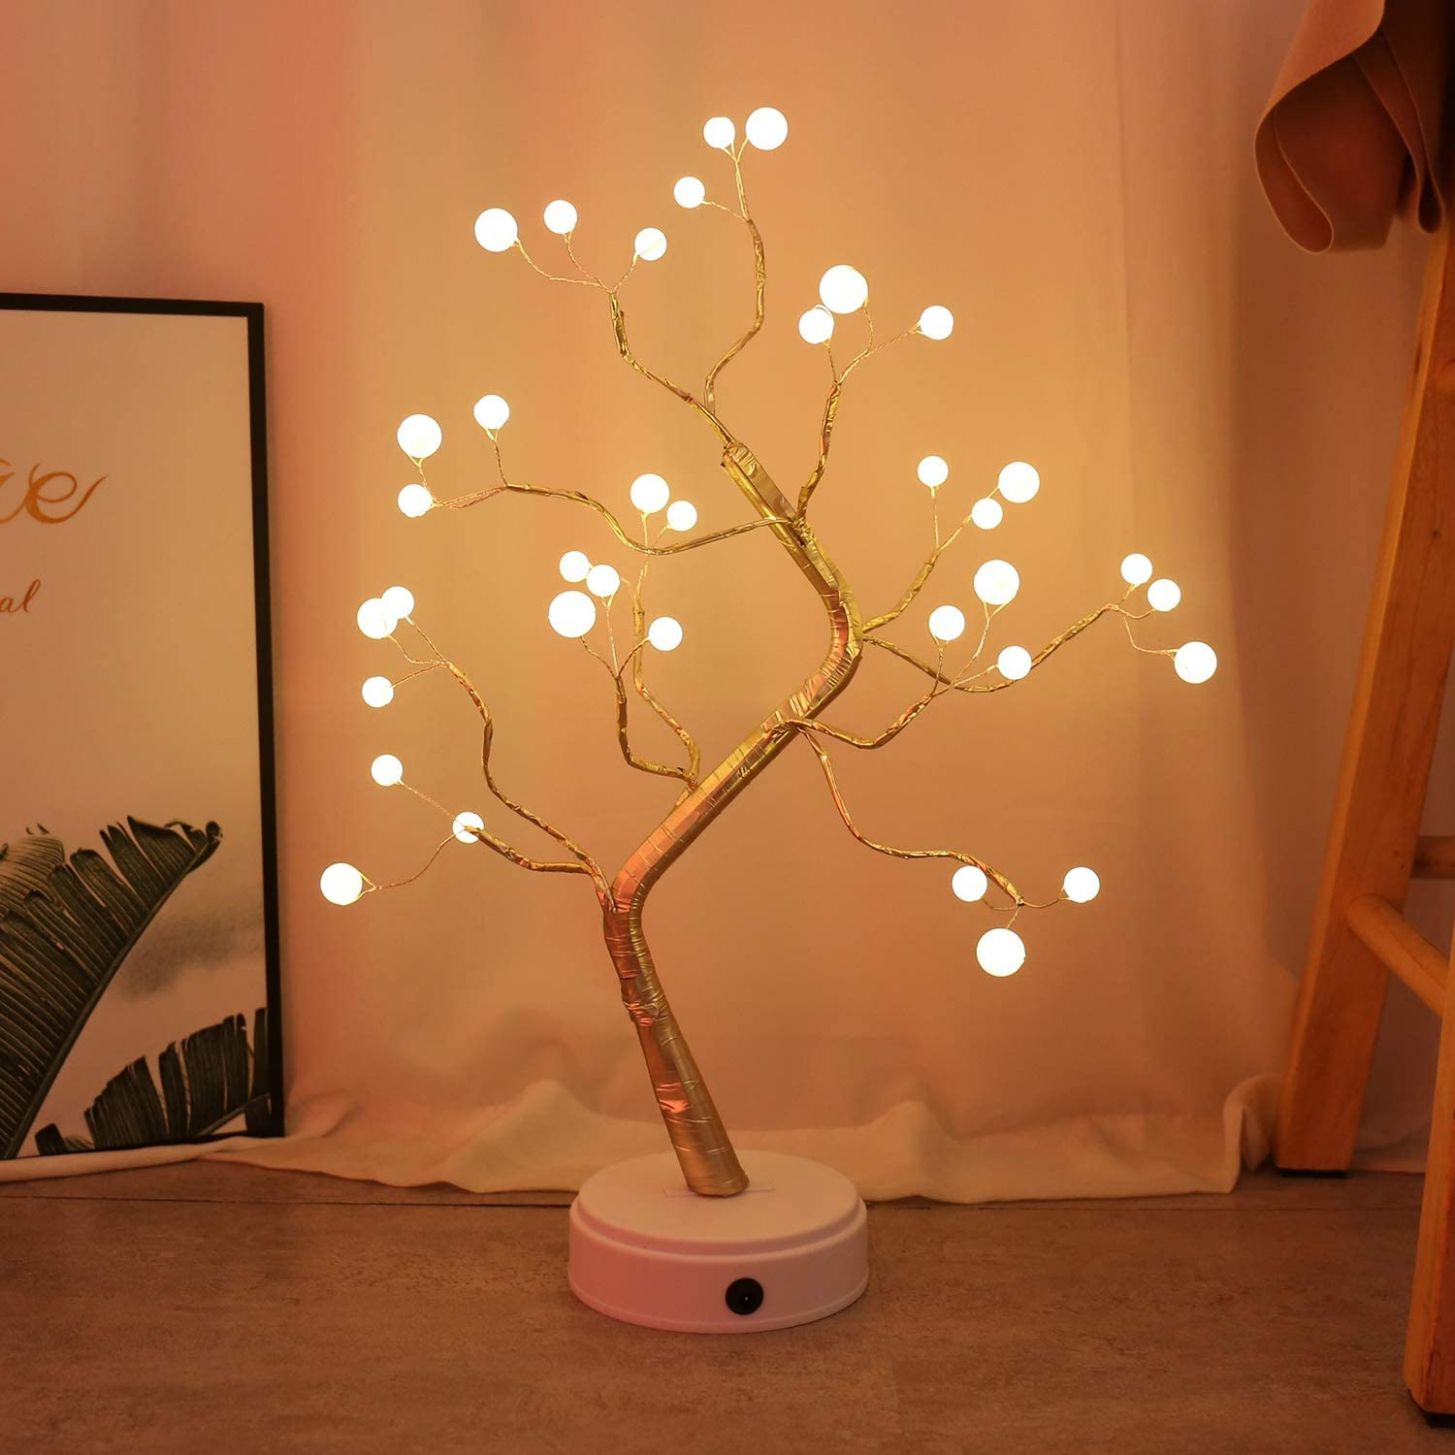 KHTO DIY Led Desk Tree Lamp, Desk Table Decor 9 Pearl LED Lights for  Home,Bedroom, Indoor,Wedding Party,Decoration Touch Switch Battery Powered  or ..